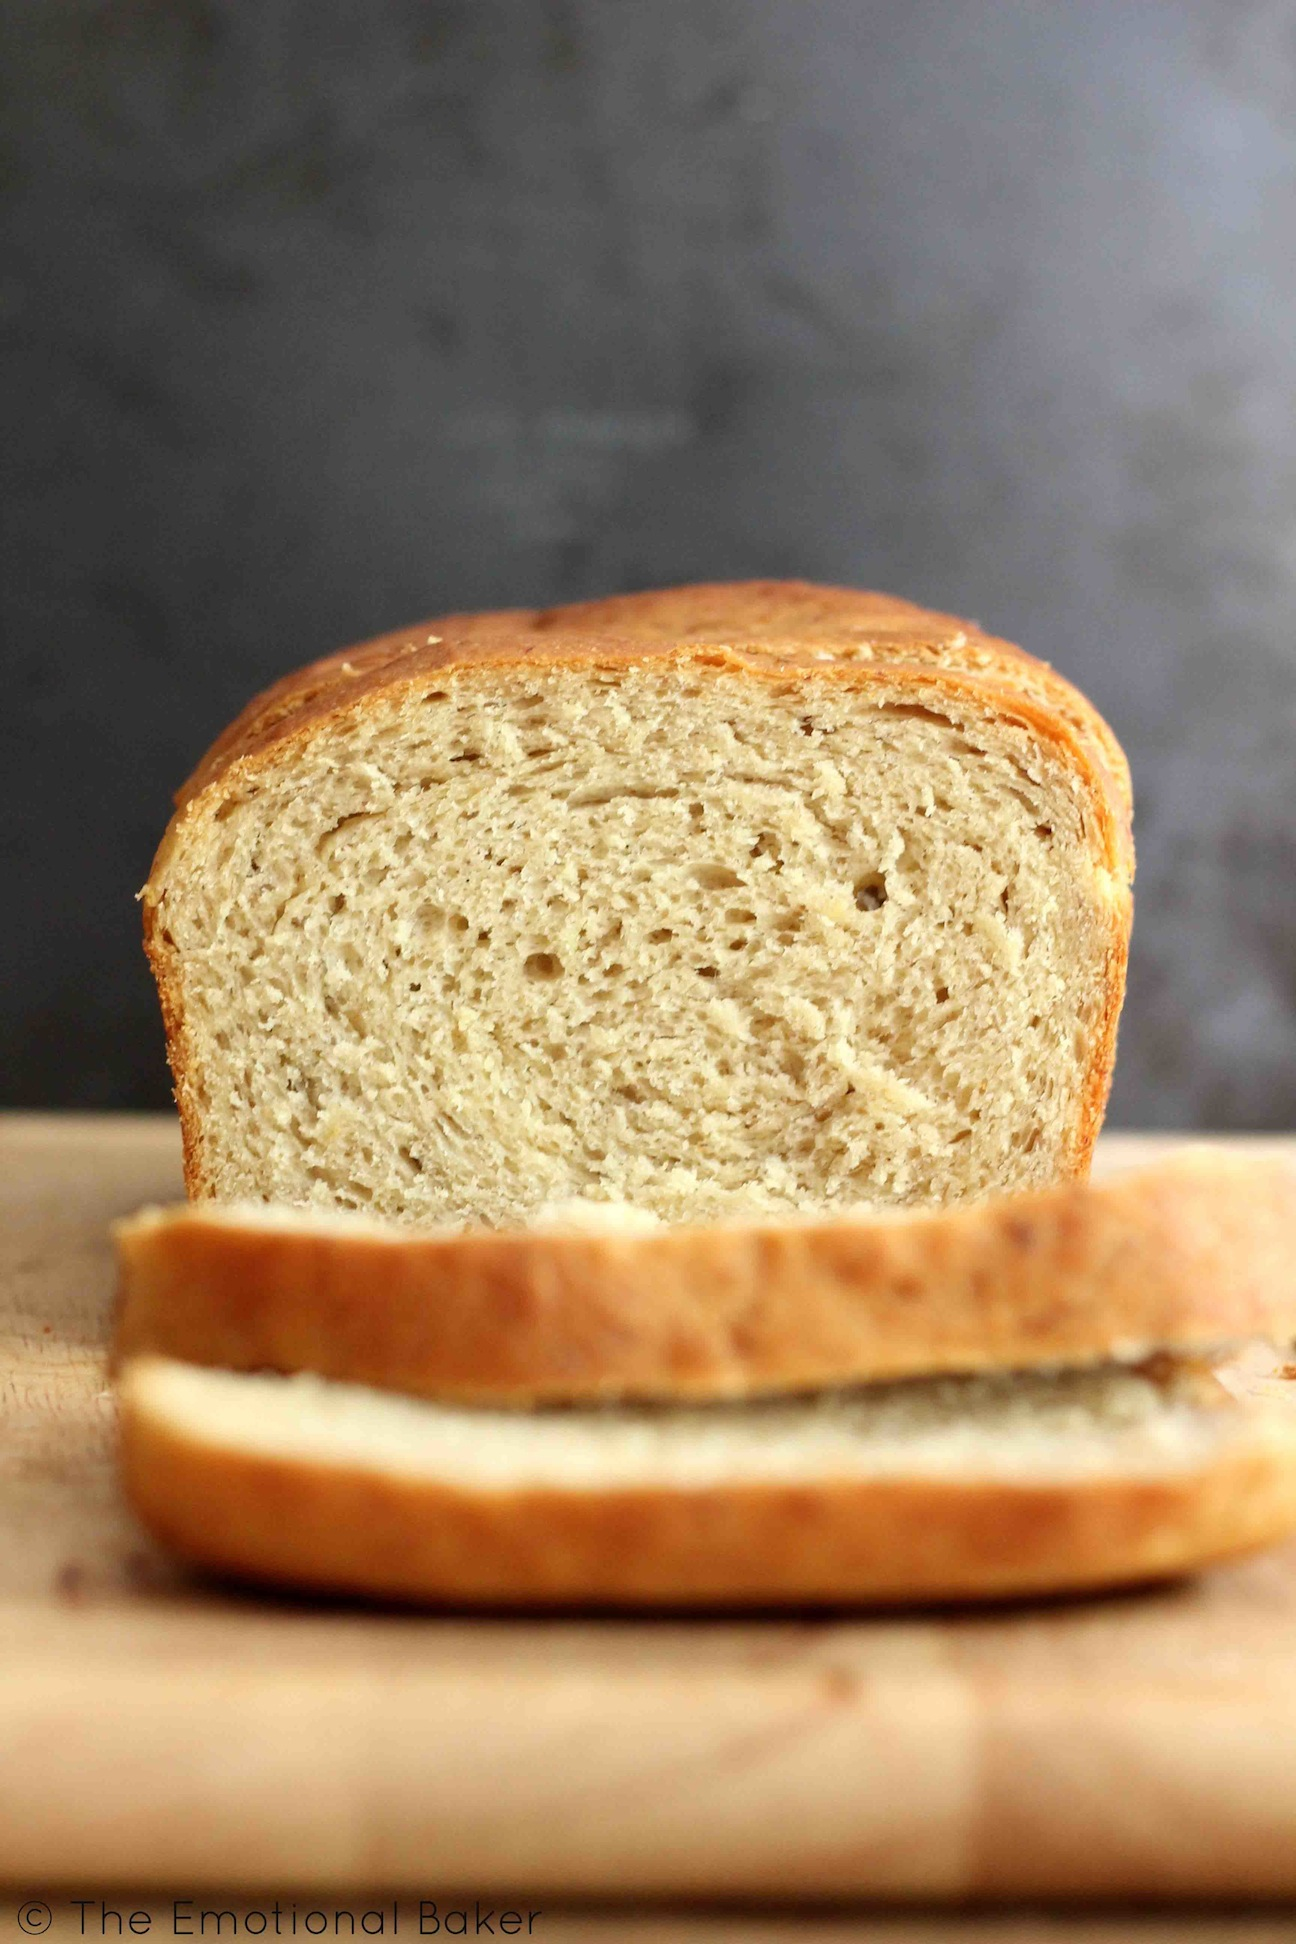 A soft, yeasted bread perfect for sandwiches